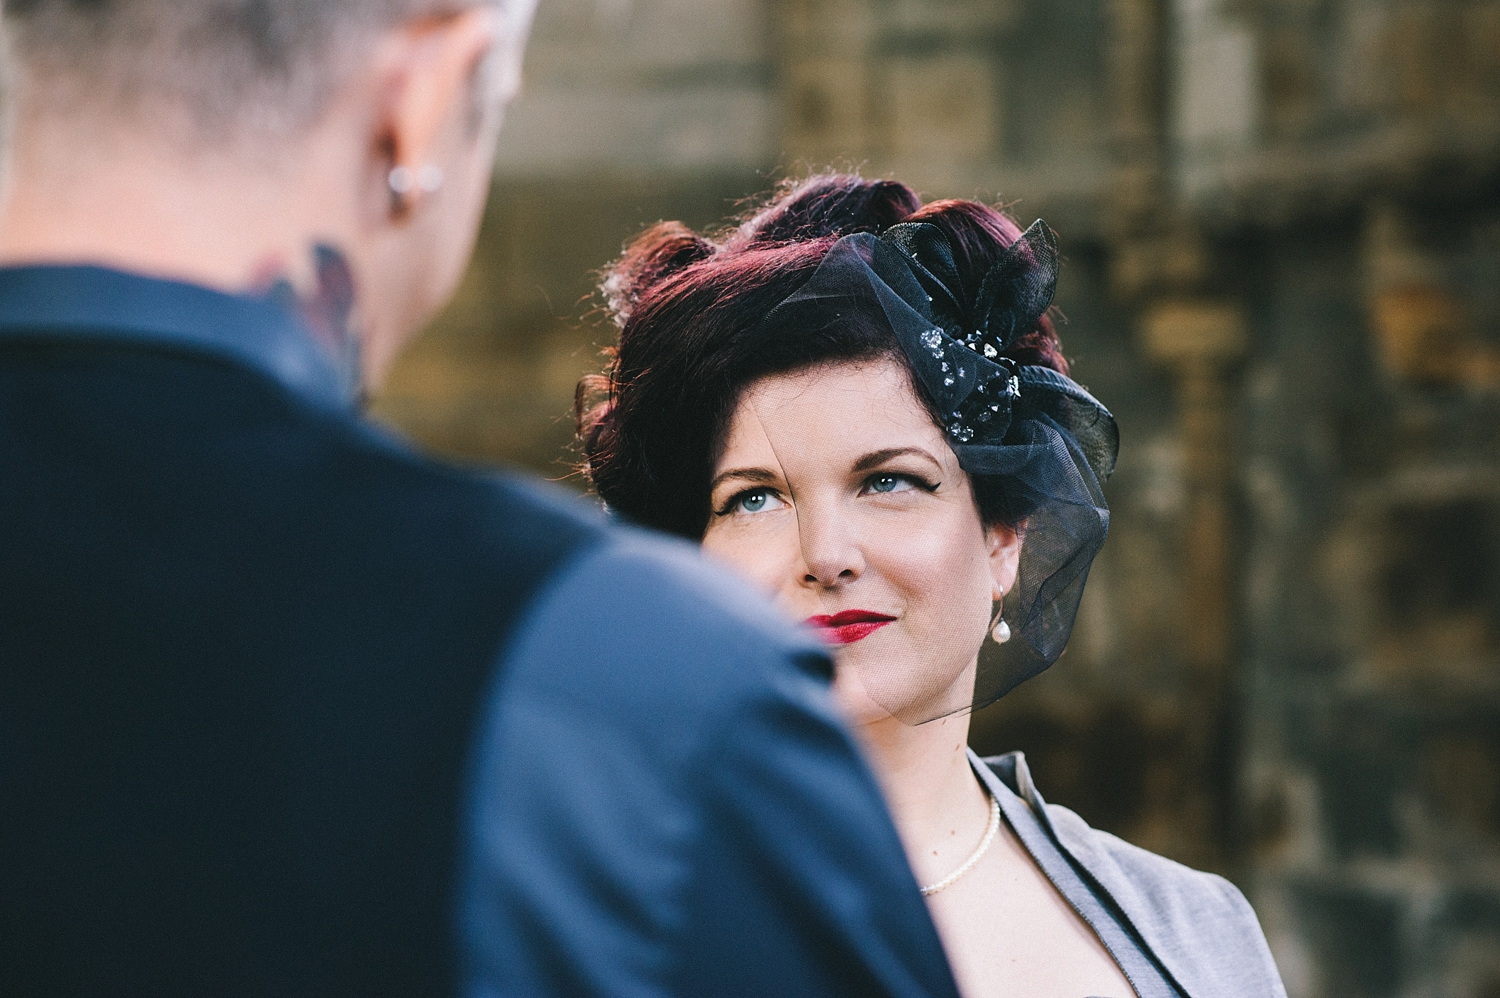 3664-lisa-devine-photography-alternative-stylish-creative-wedding-photography-glasgow-scotland-uk.JPG